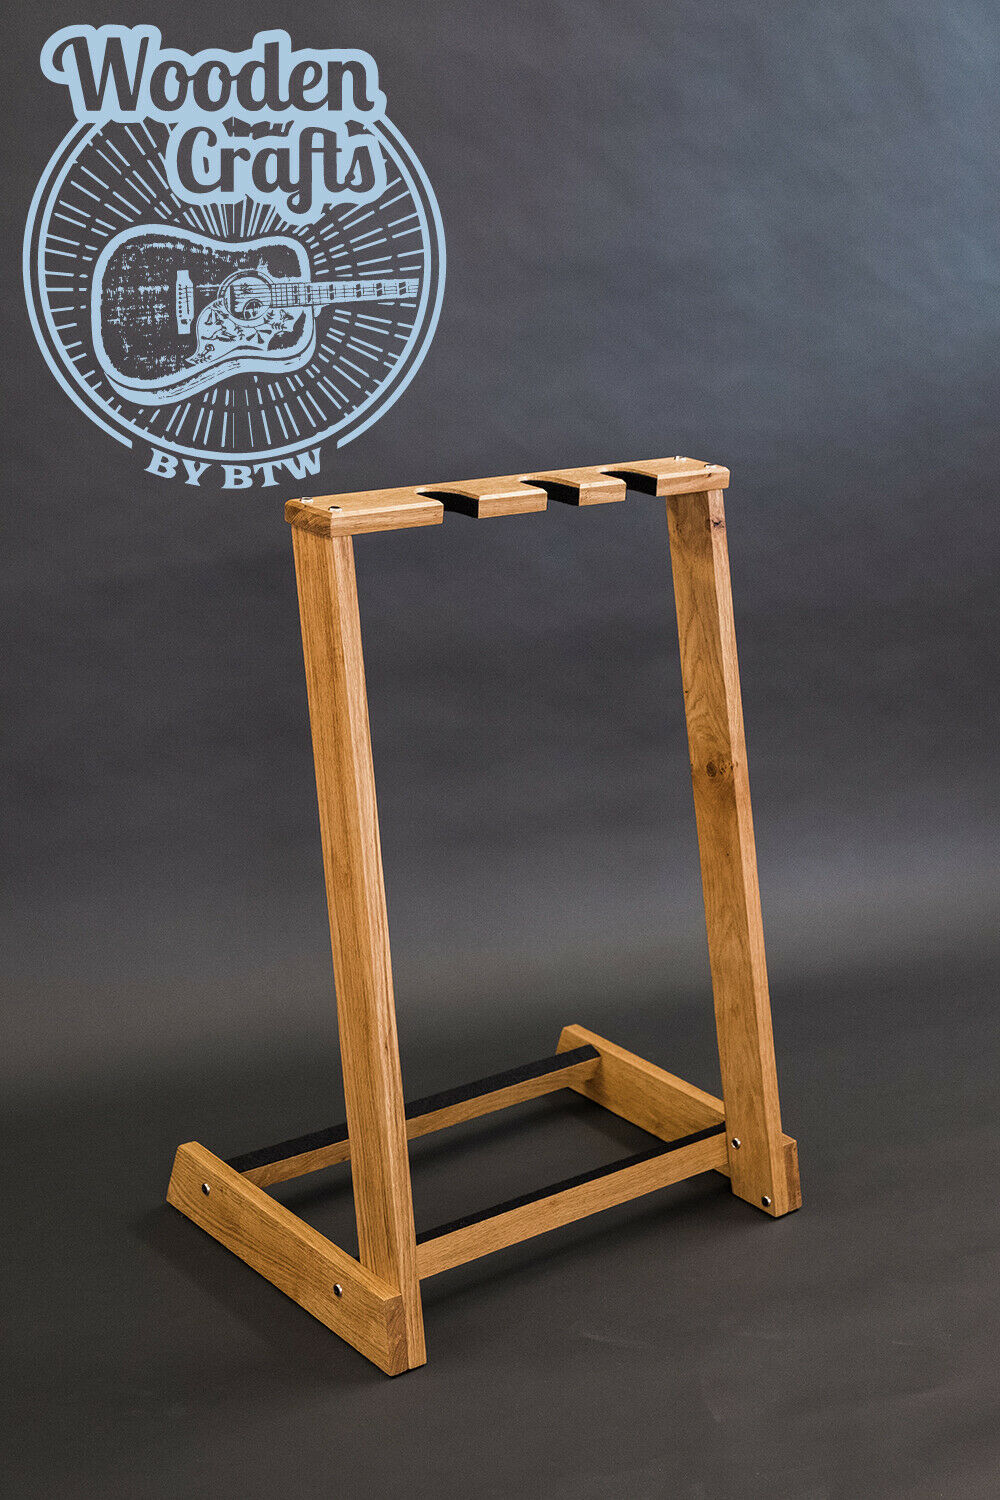 Solid Oak Wood Multi Wooden guitar stand, for 2, 3, 4, 5 or 6 guitars